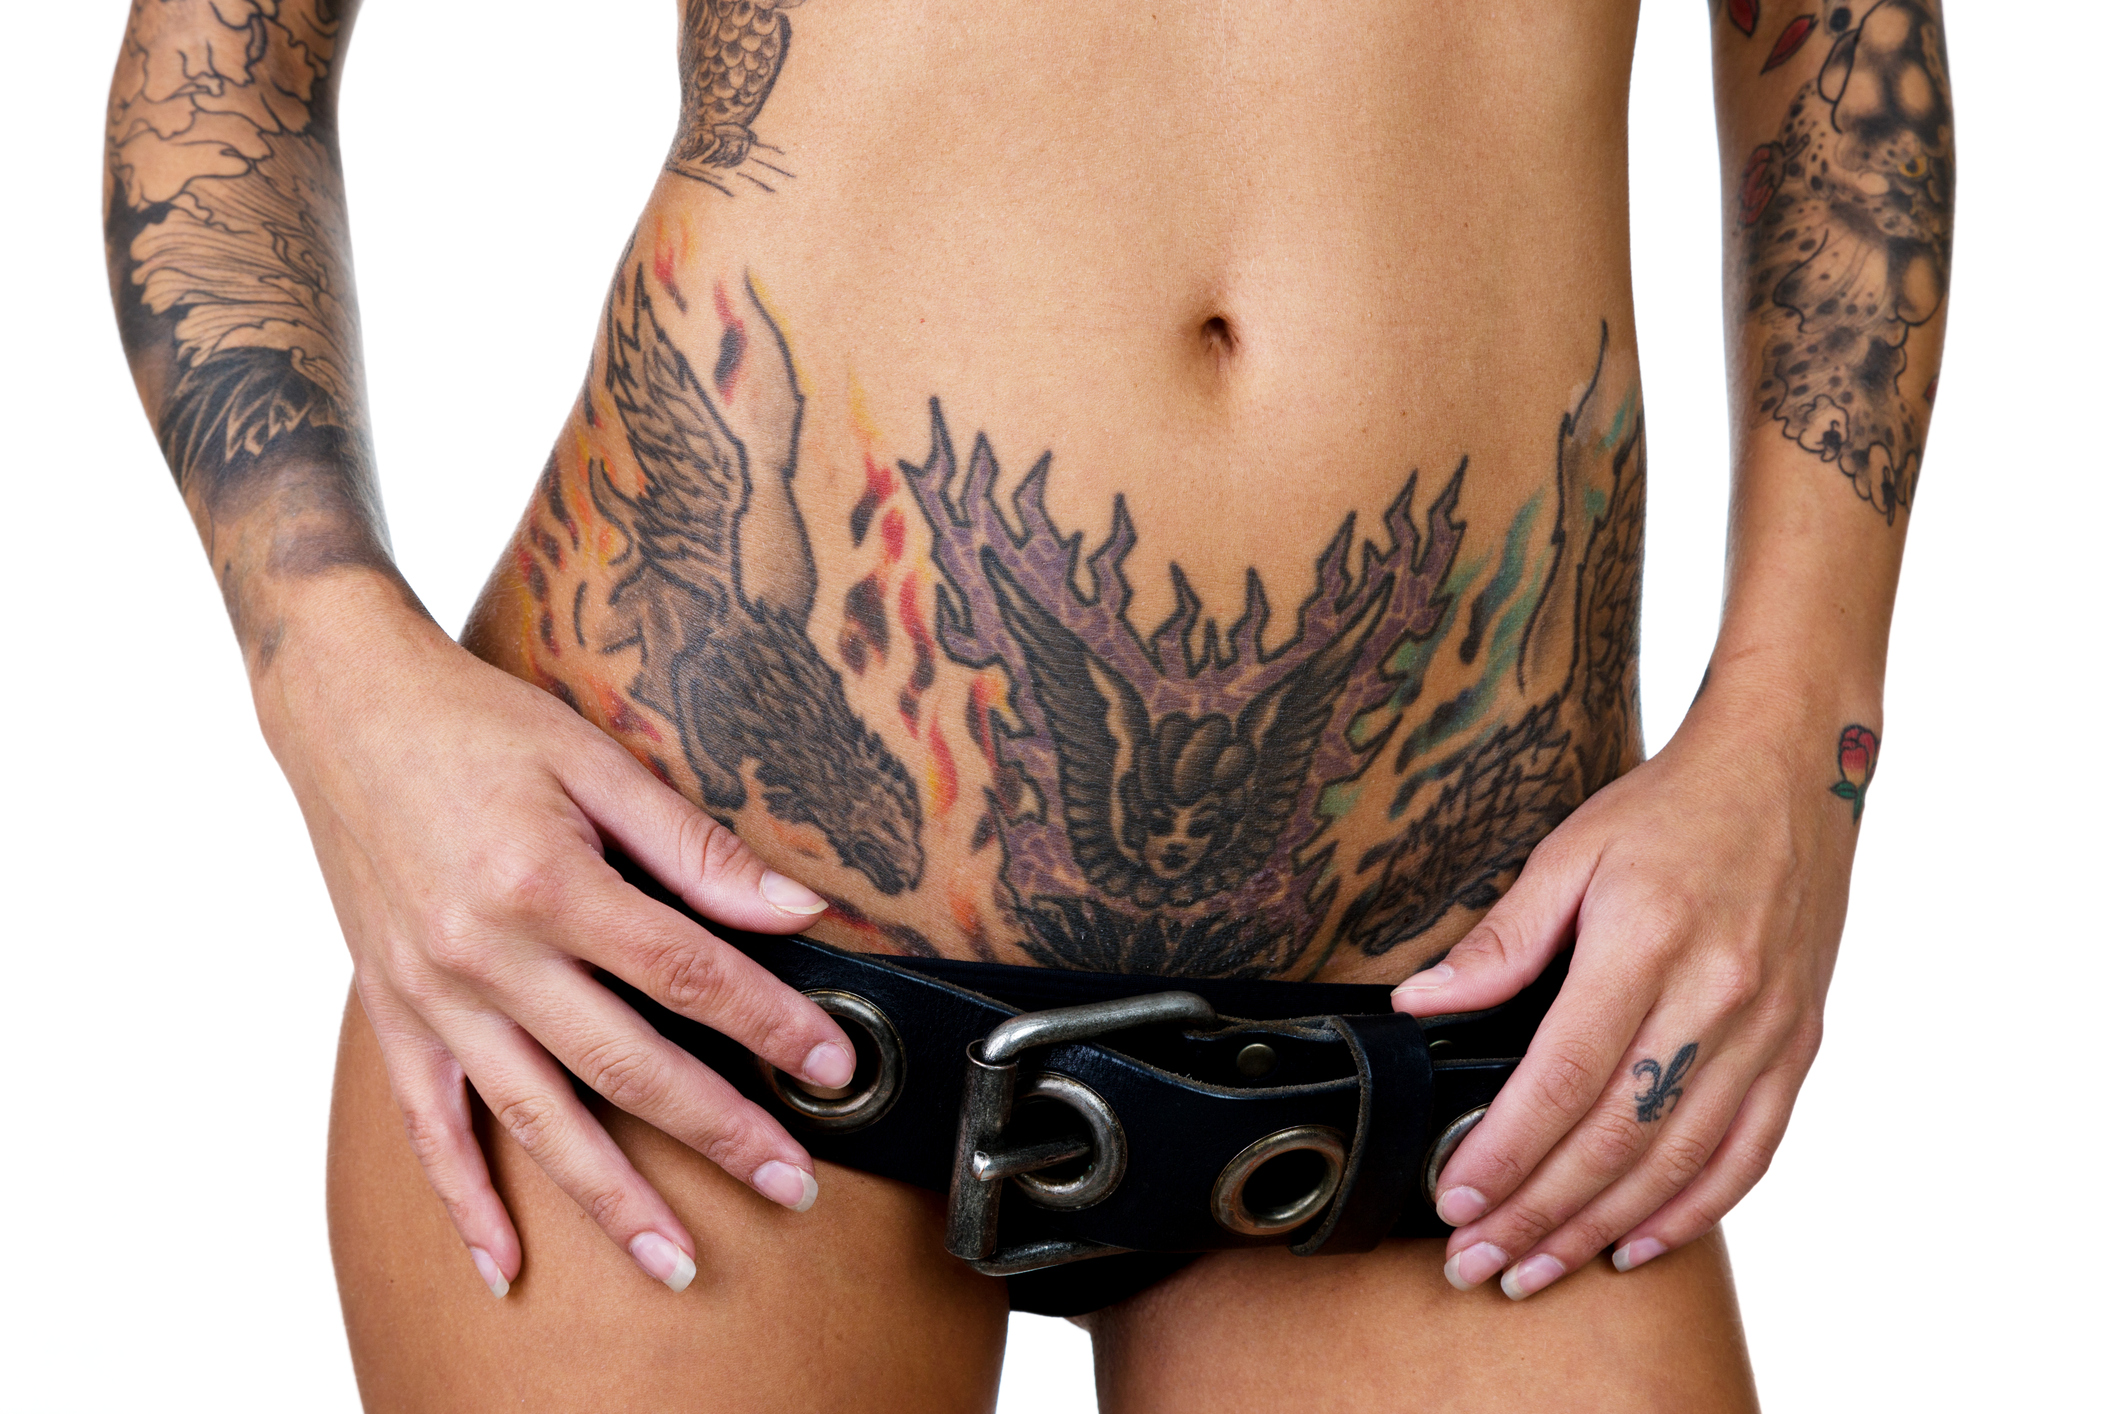 Private parts tattoo for men - Private Parts Tattoo For Men 10